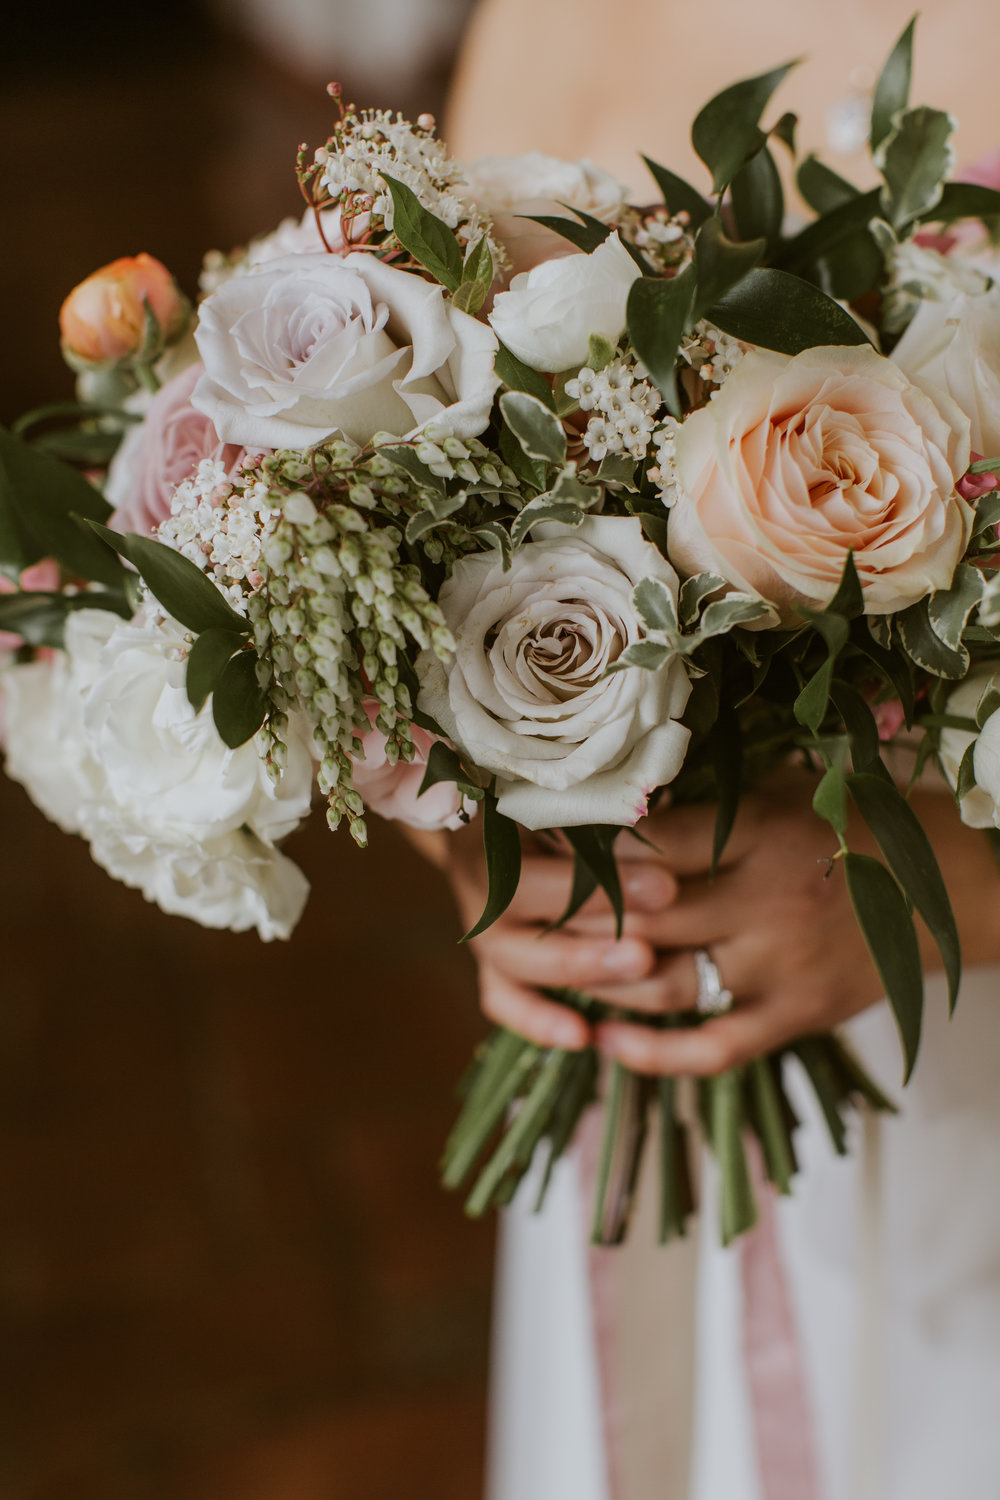 """I got so many compliments on my bouquet, and everyone wanted to know where I got it from!"" - - Elopement Bride"